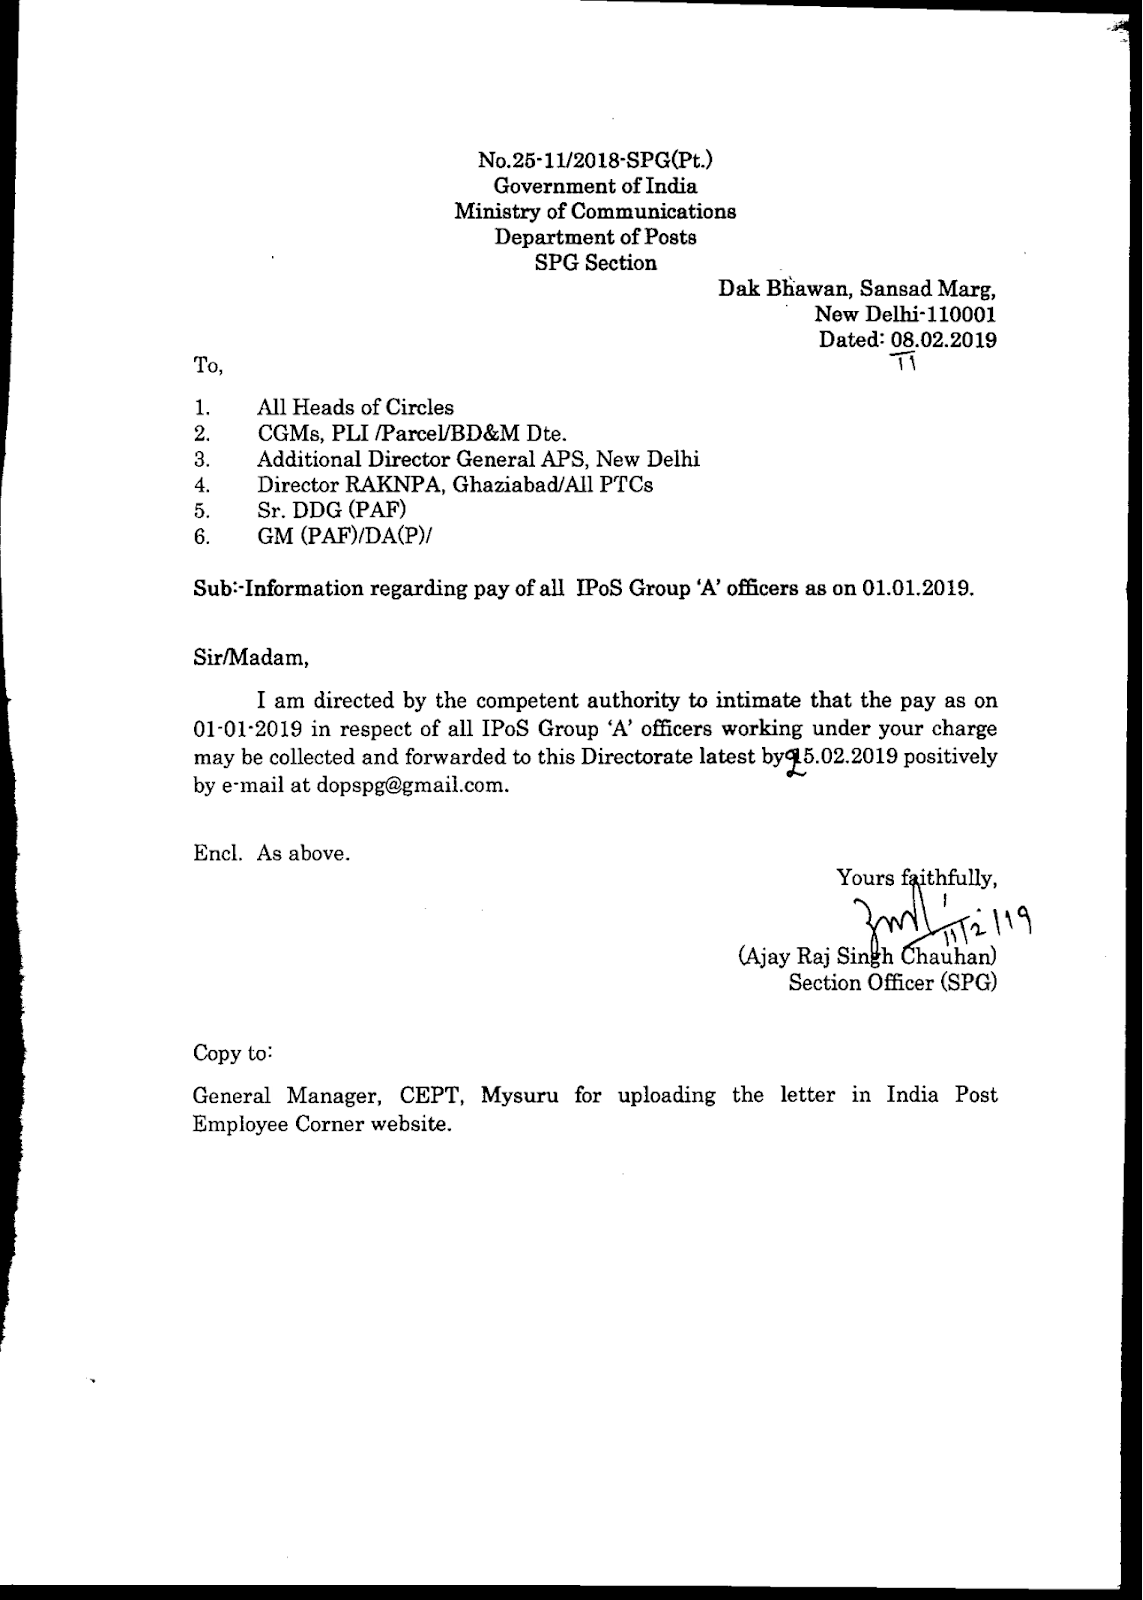 Information regarding pay of all IPoS Group A Officers